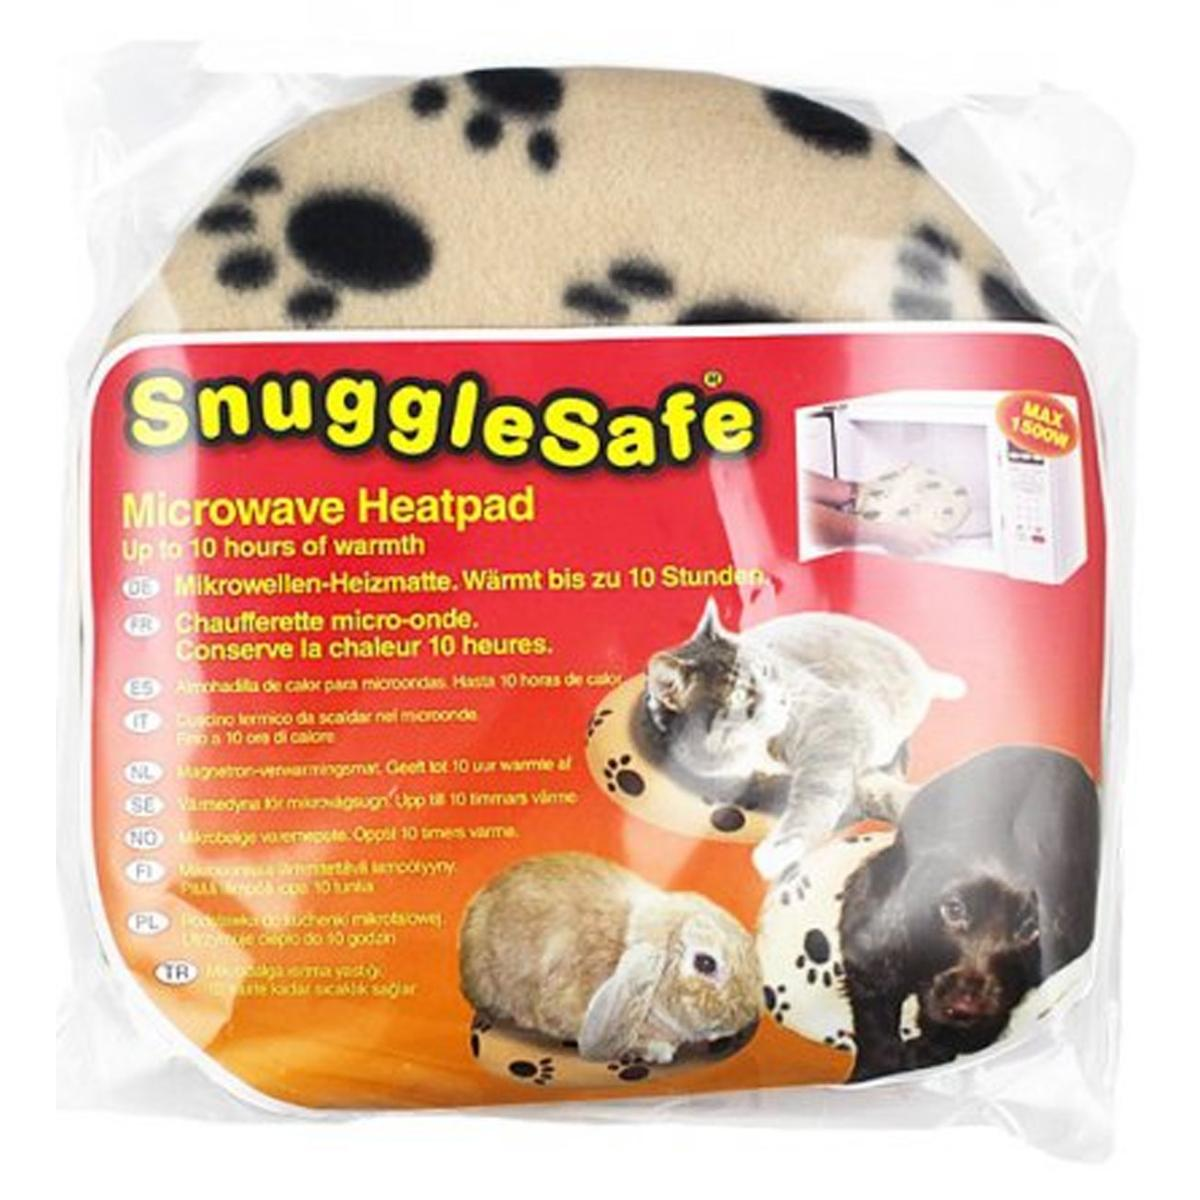 Snugglesafe Microwave Heatpad For Small